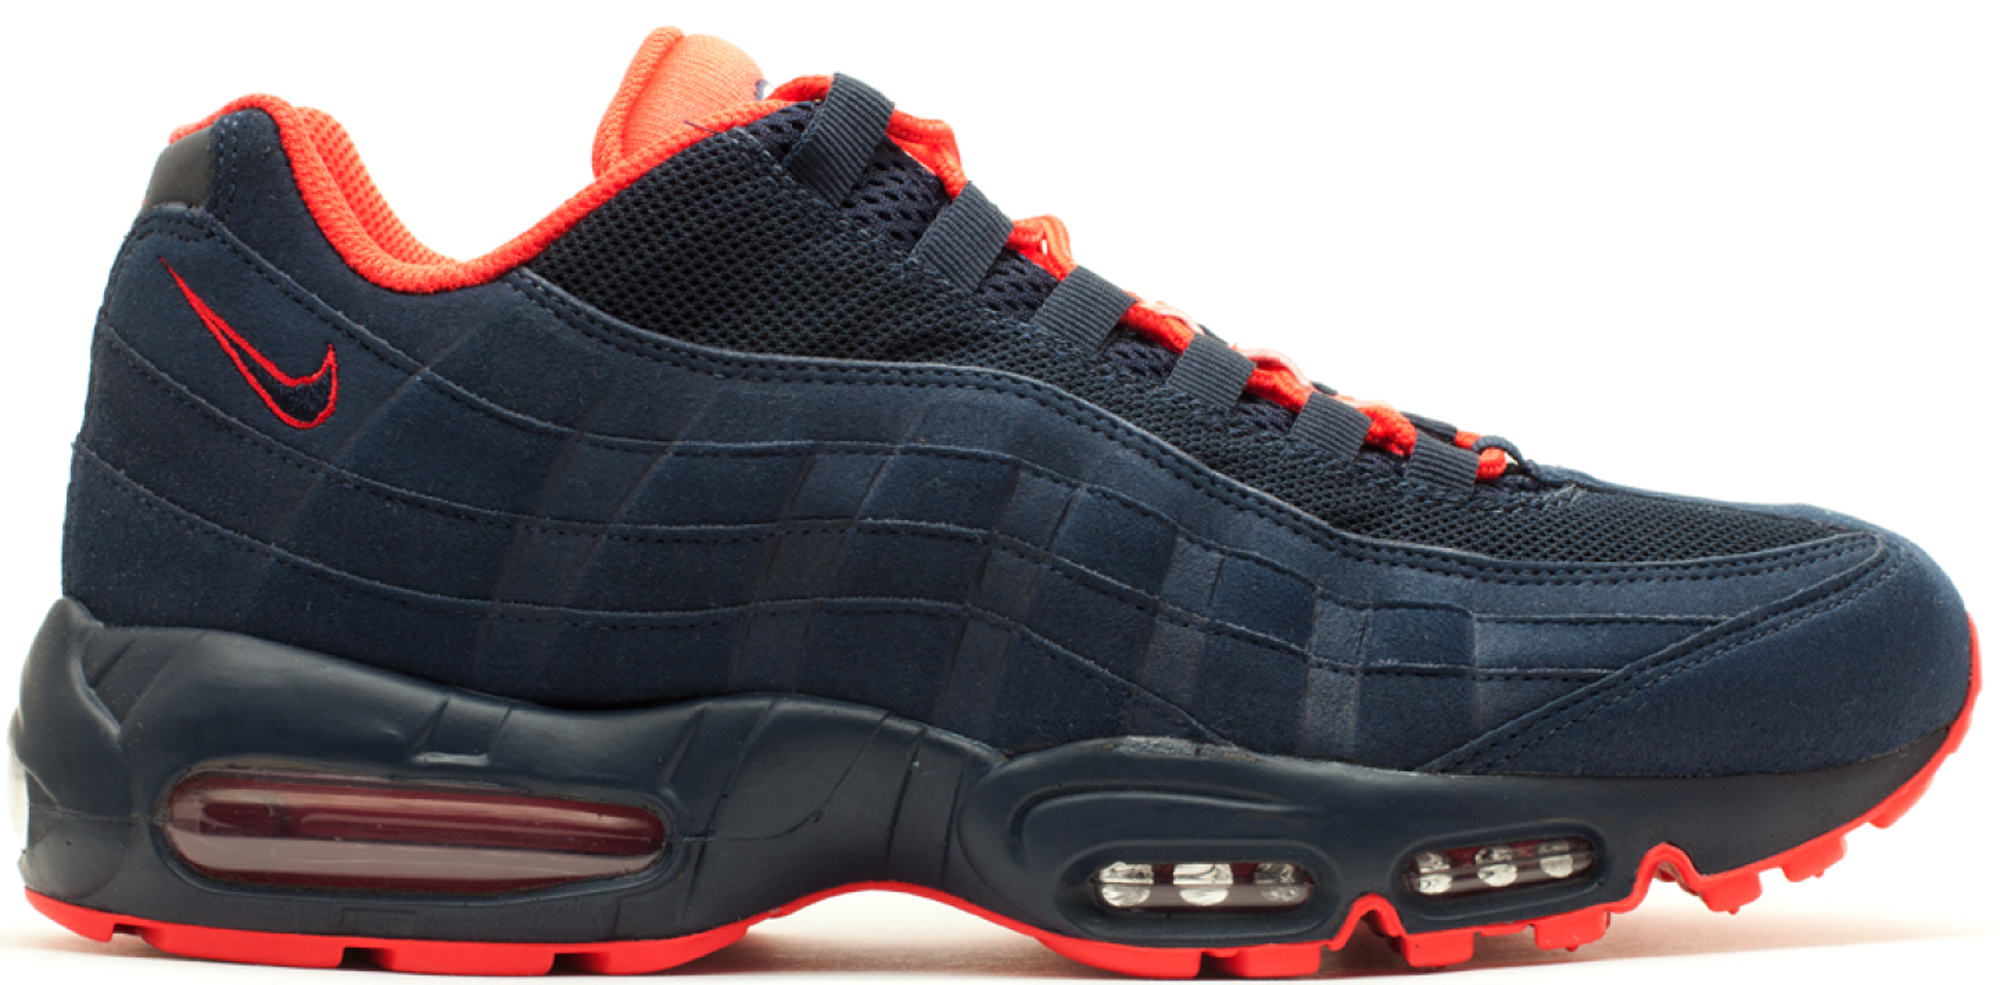 huge discount c0ef2 92d15 coupon code for nike air max 95 obsidian blue view 14988 e2d6a